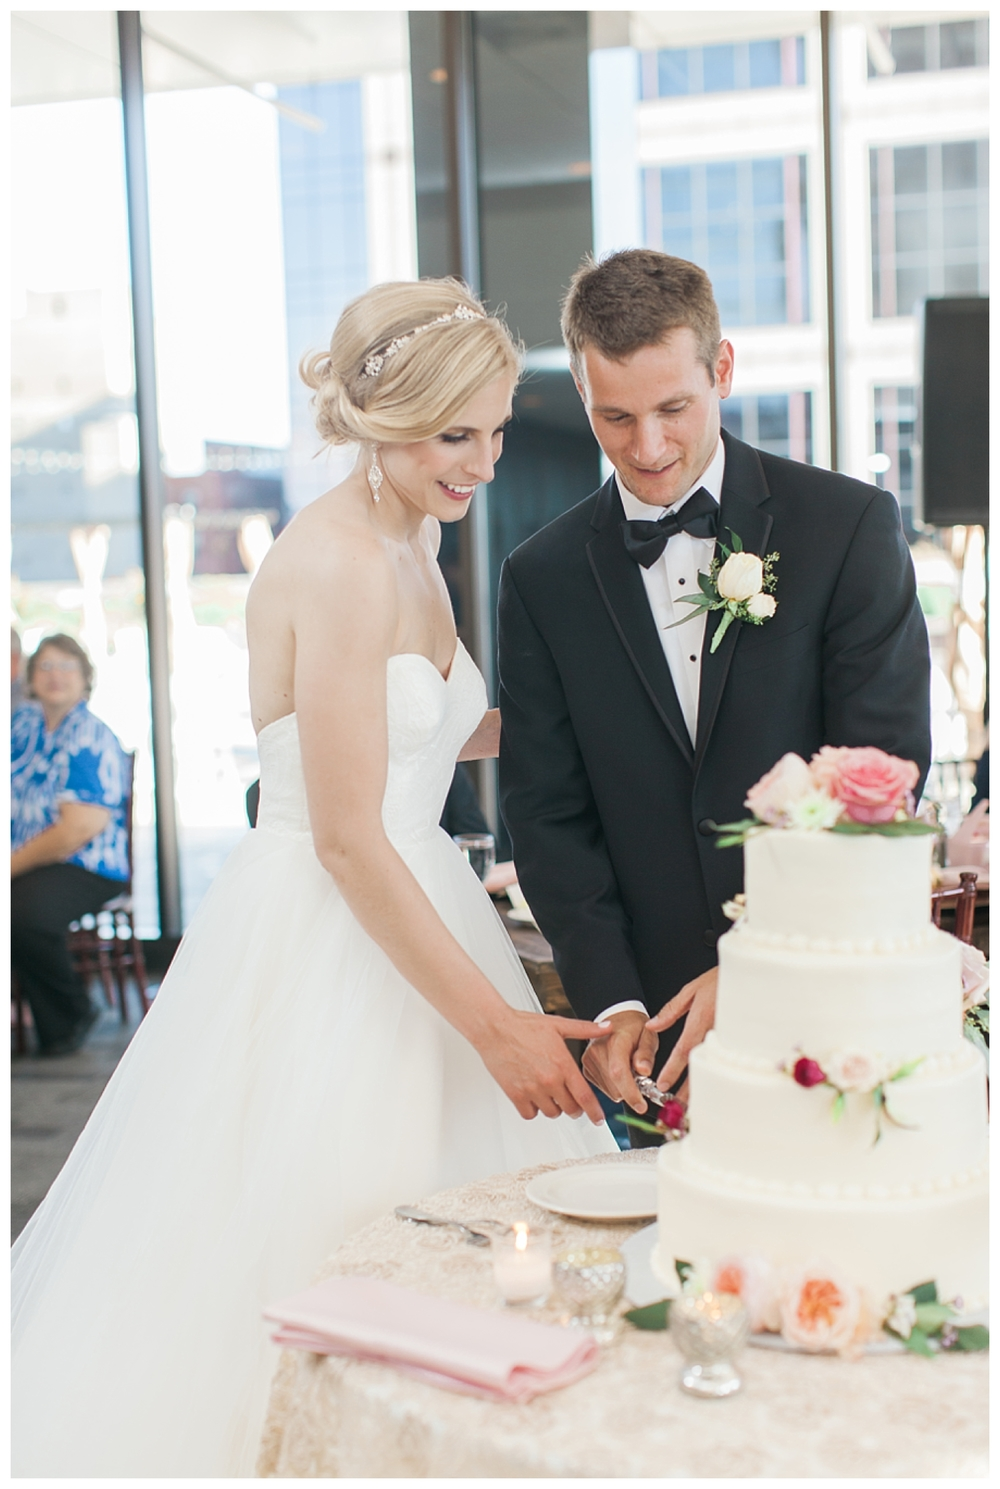 Rebecca_Bridges_Photography_Indianapolis_Wedding_Photographer_4766.jpg